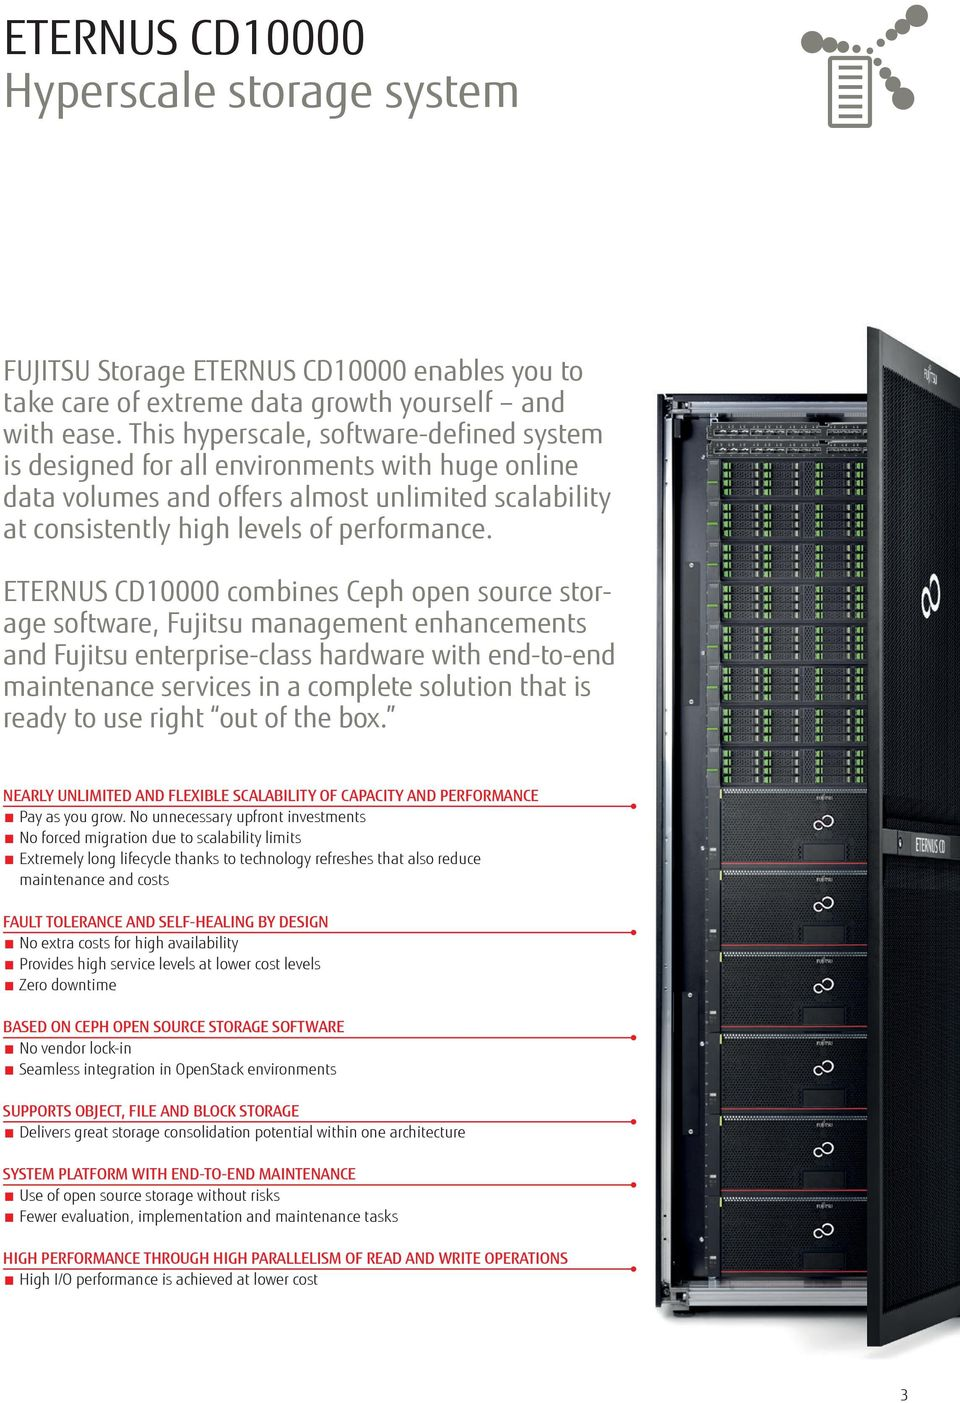 ETERNUS CD10000 combines Ceph open source storage software, Fujitsu management enhancements and Fujitsu enterprise-class hardware with end-to-end maintenance services in a complete solution that is